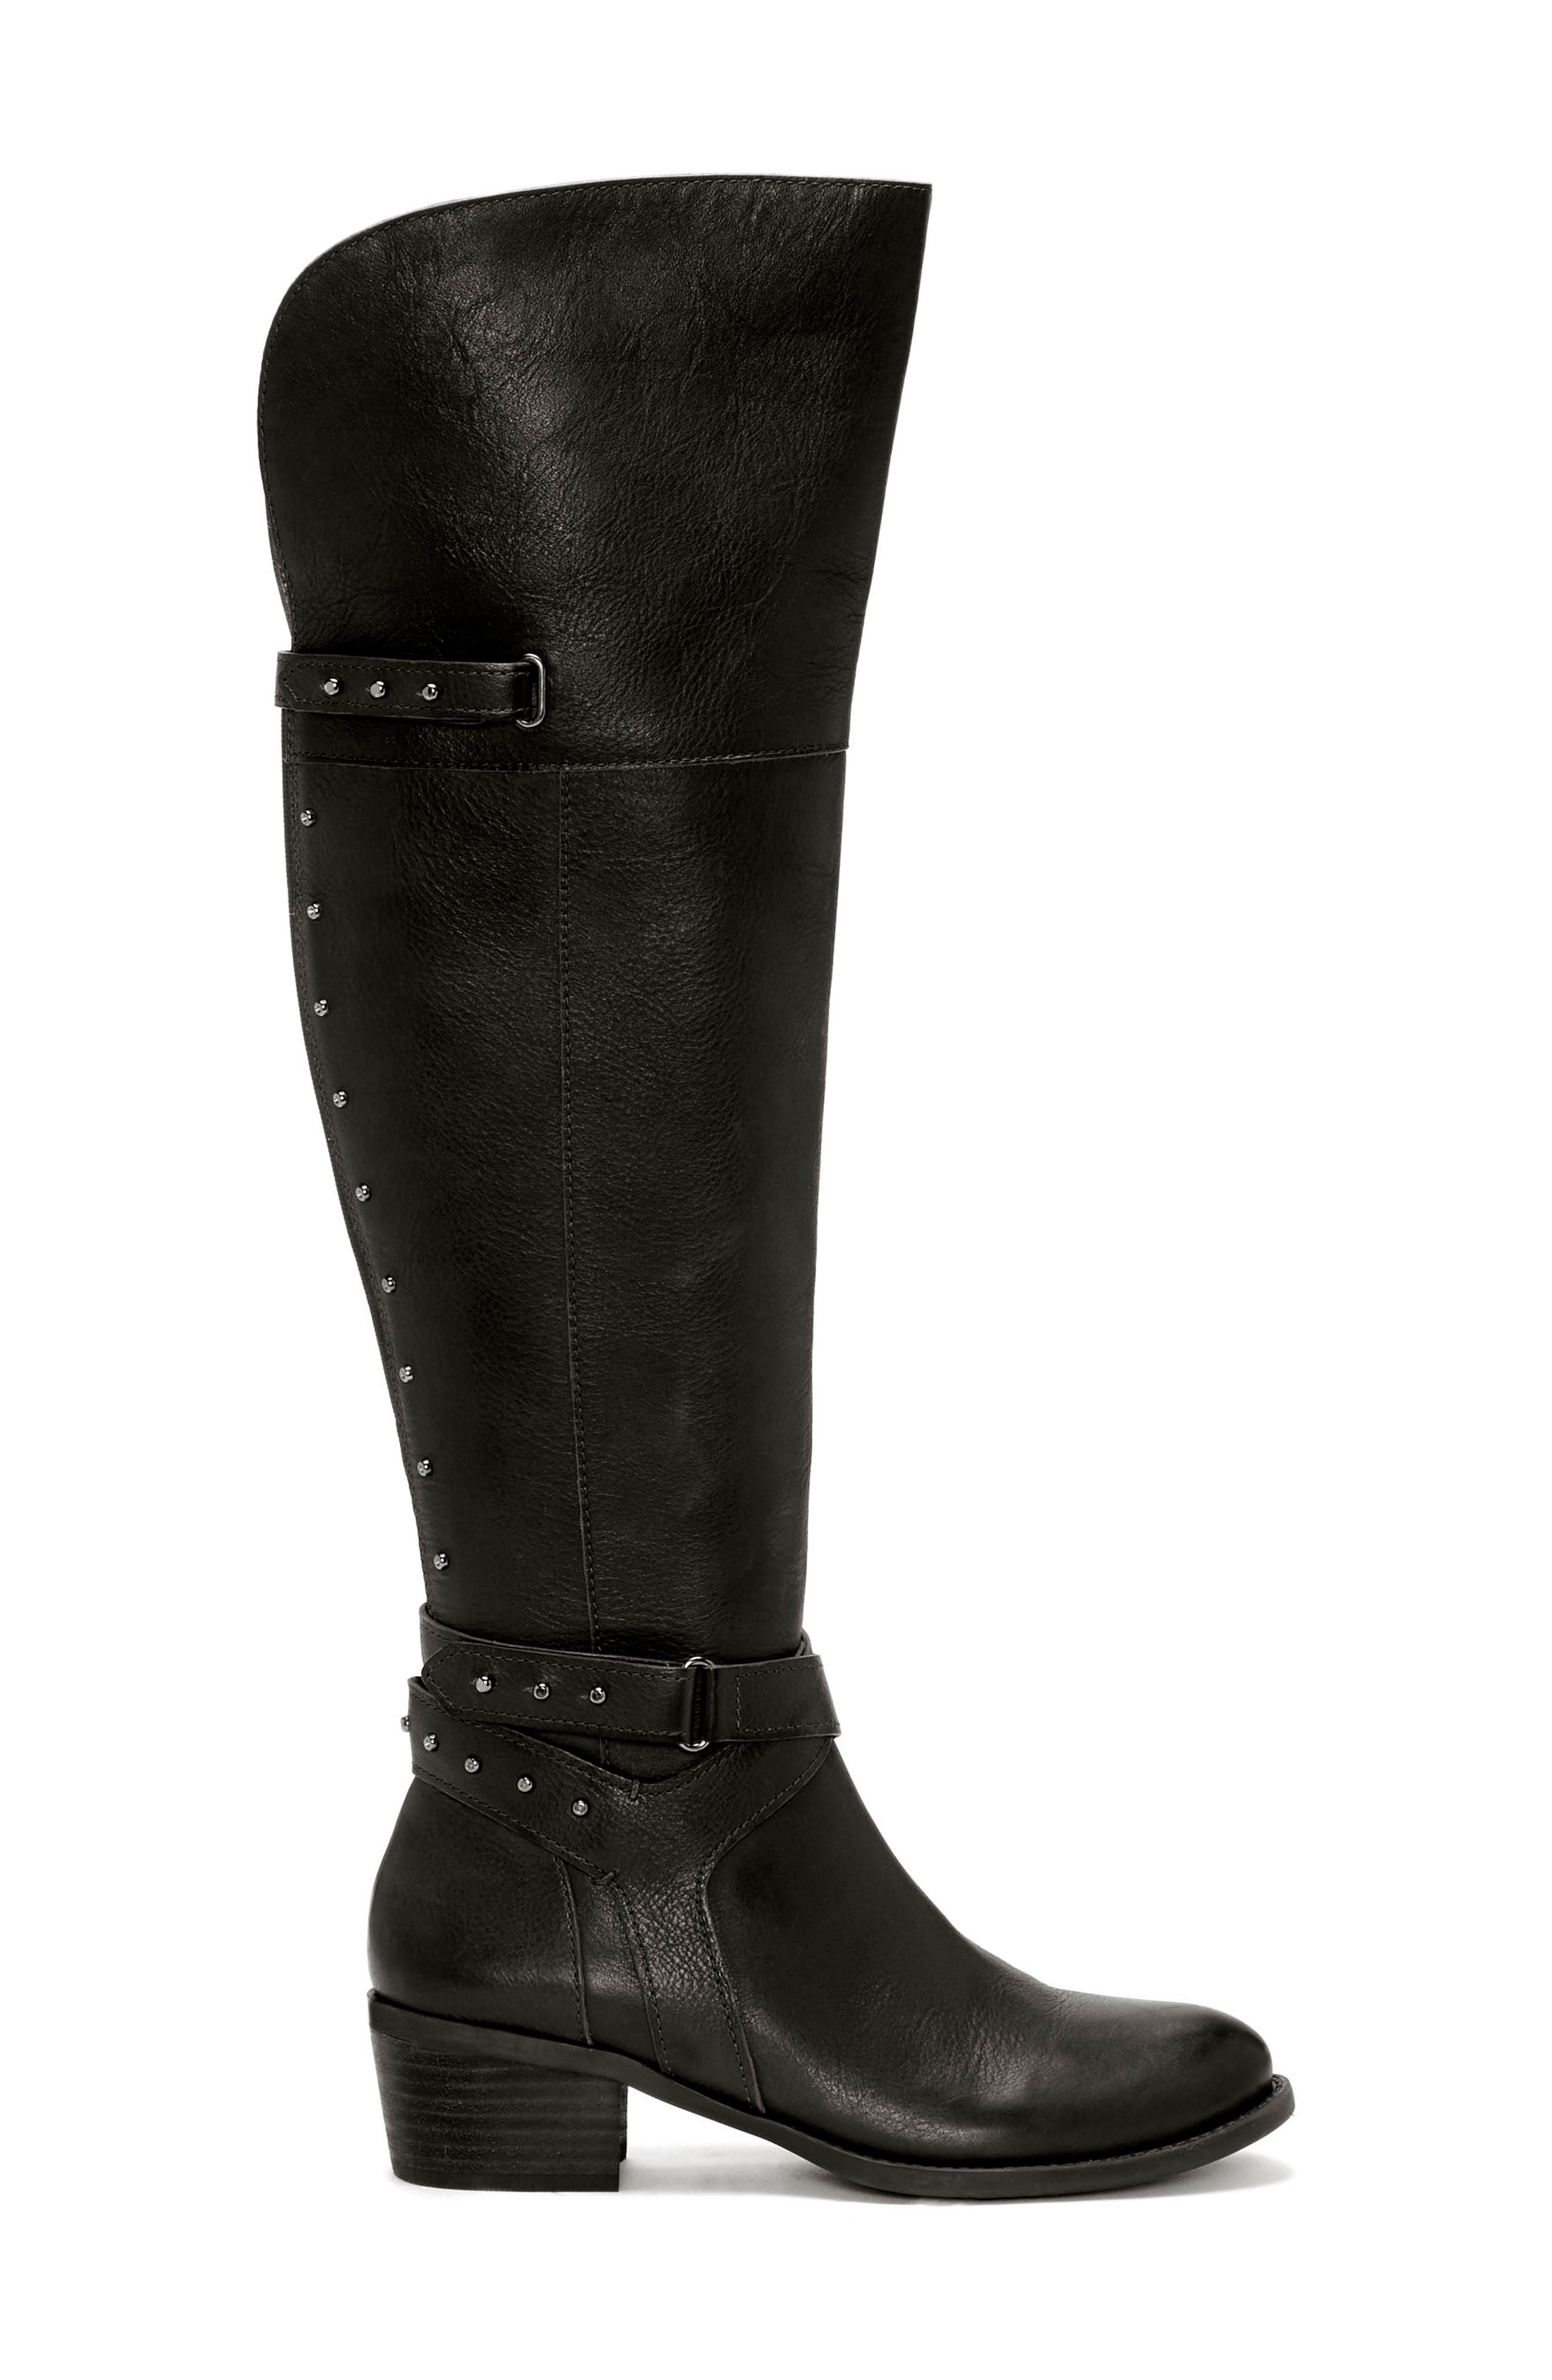 Bestant Over the Knee Boot,                             Alternate thumbnail 3, color,                             BLACK LEATHER WIDE CALF